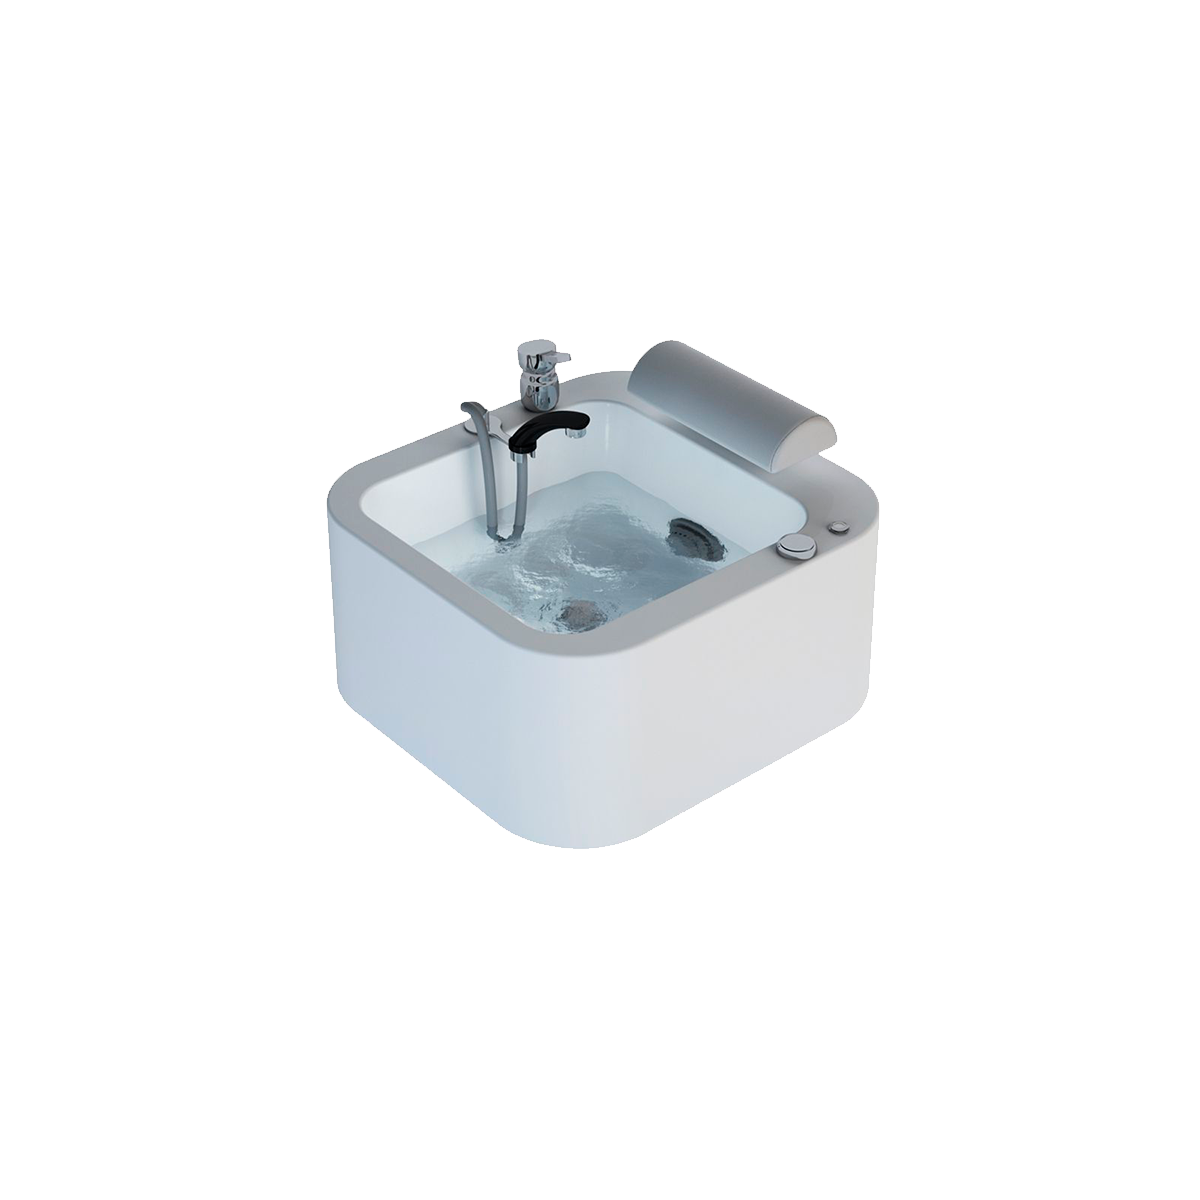 Pedicure sink